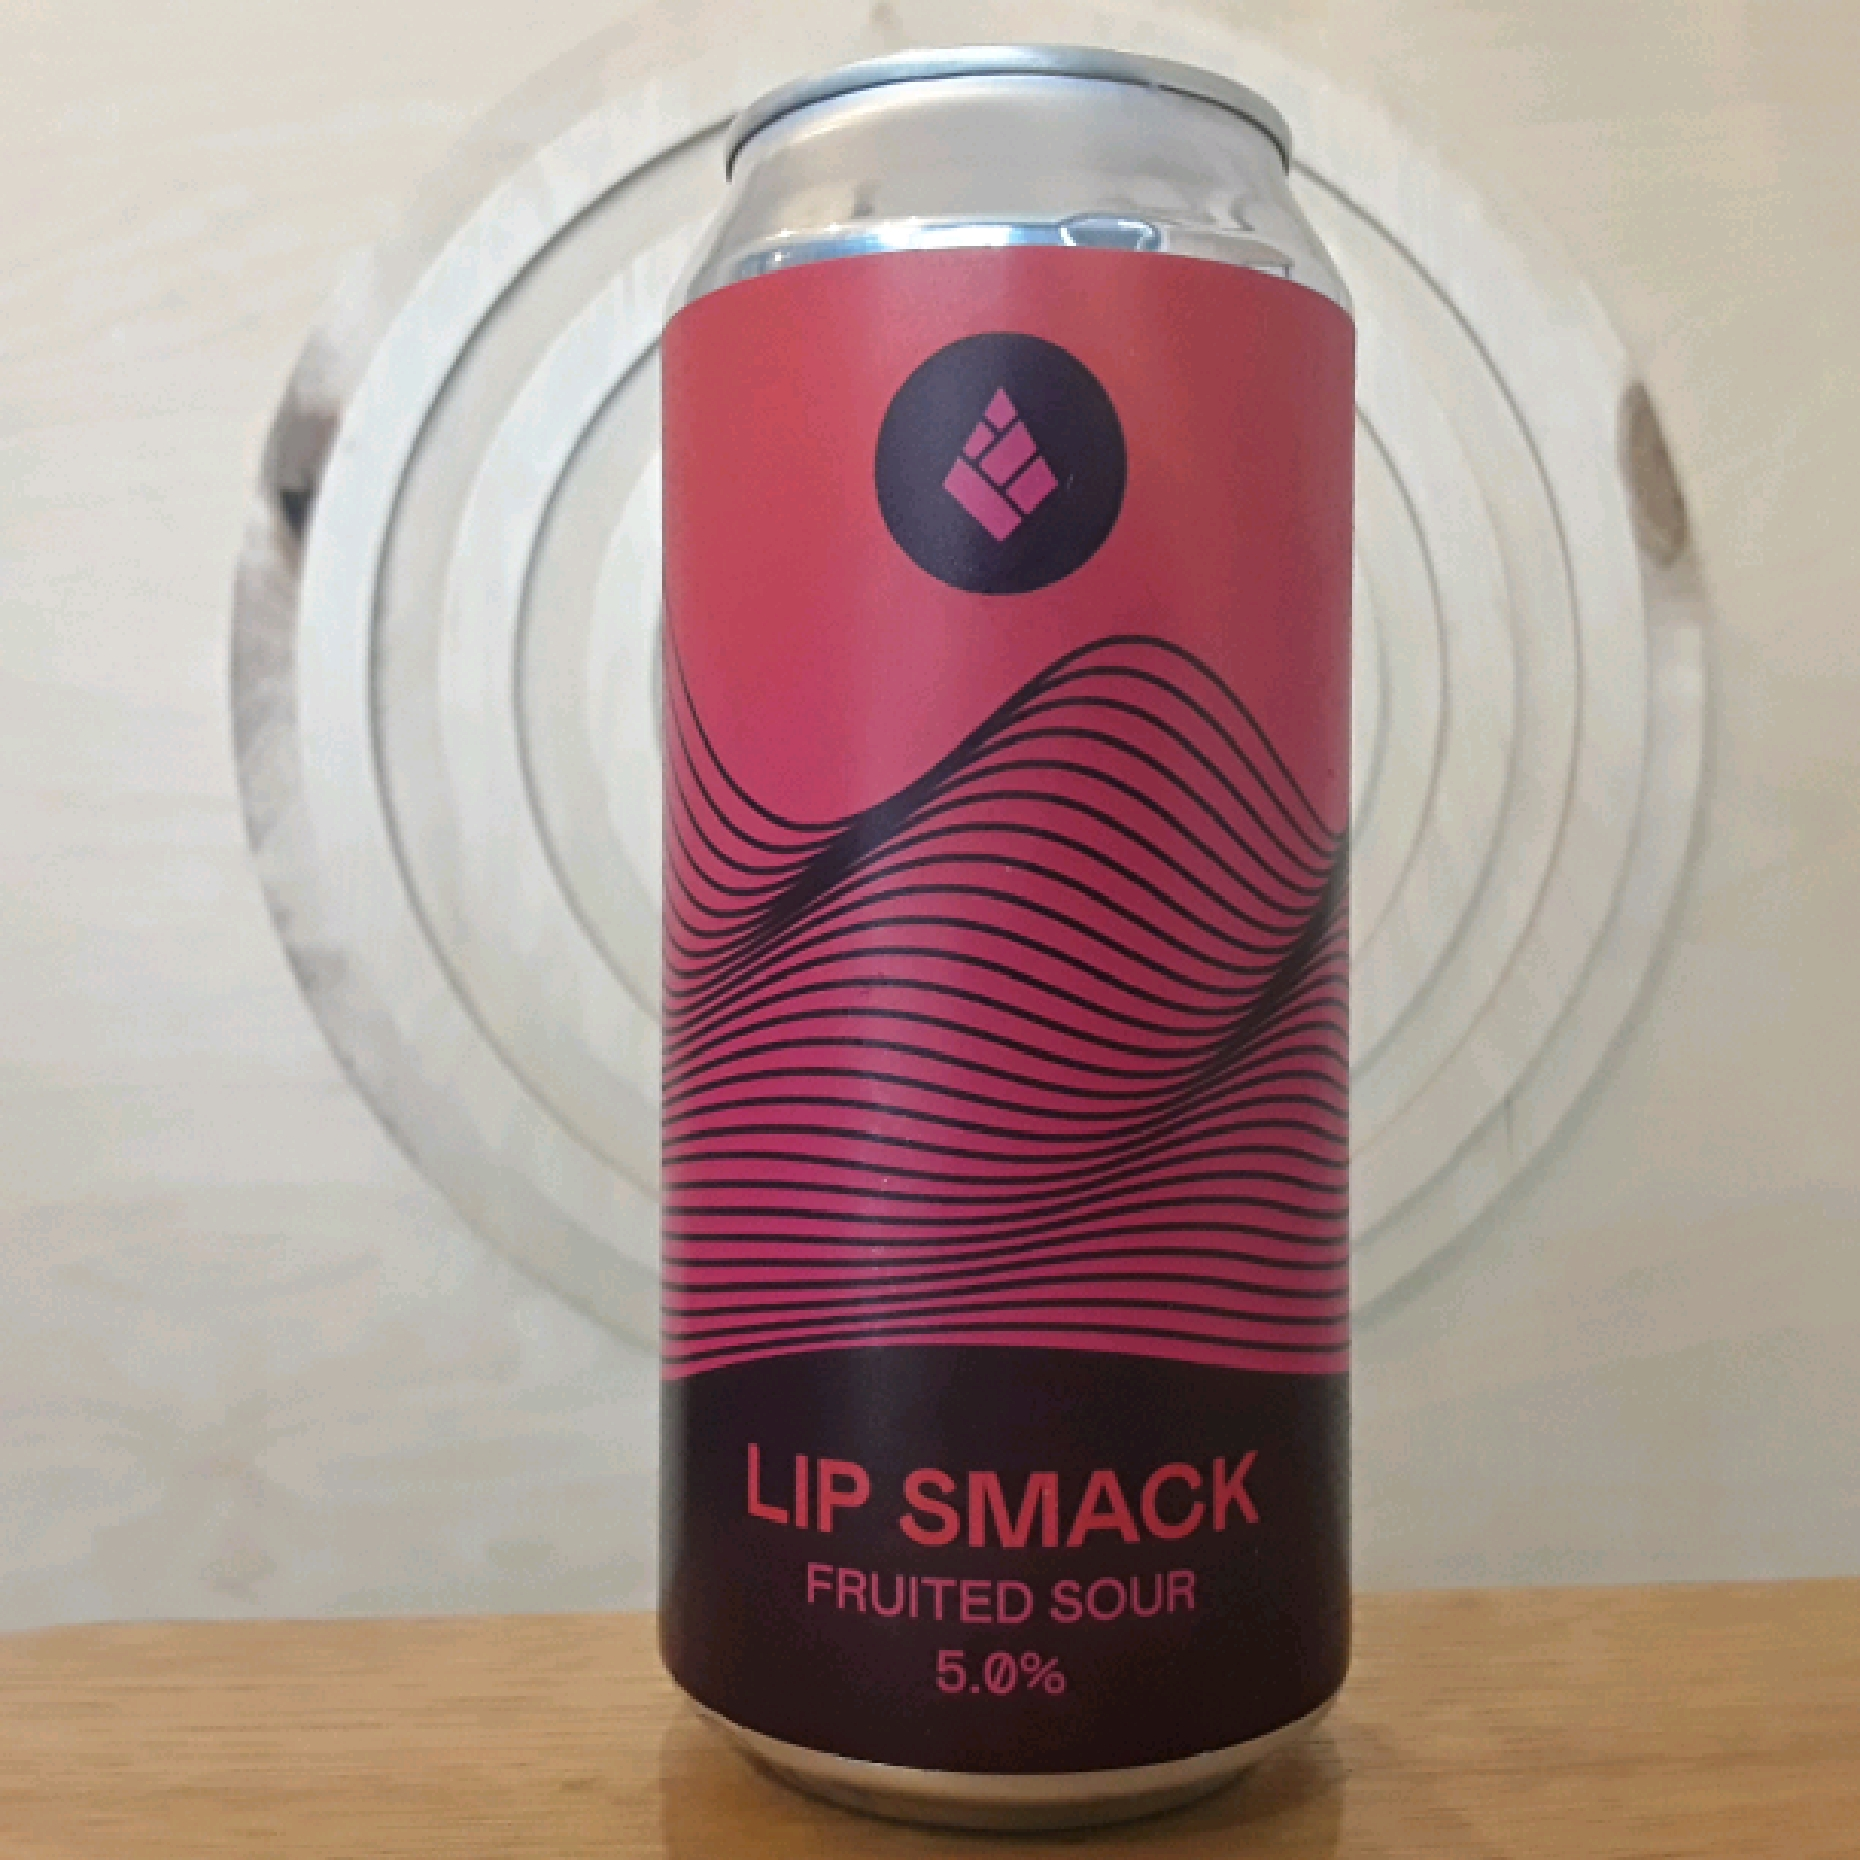 Drop Project Lip Smack Raspberry and Blackberry Fruited Sour